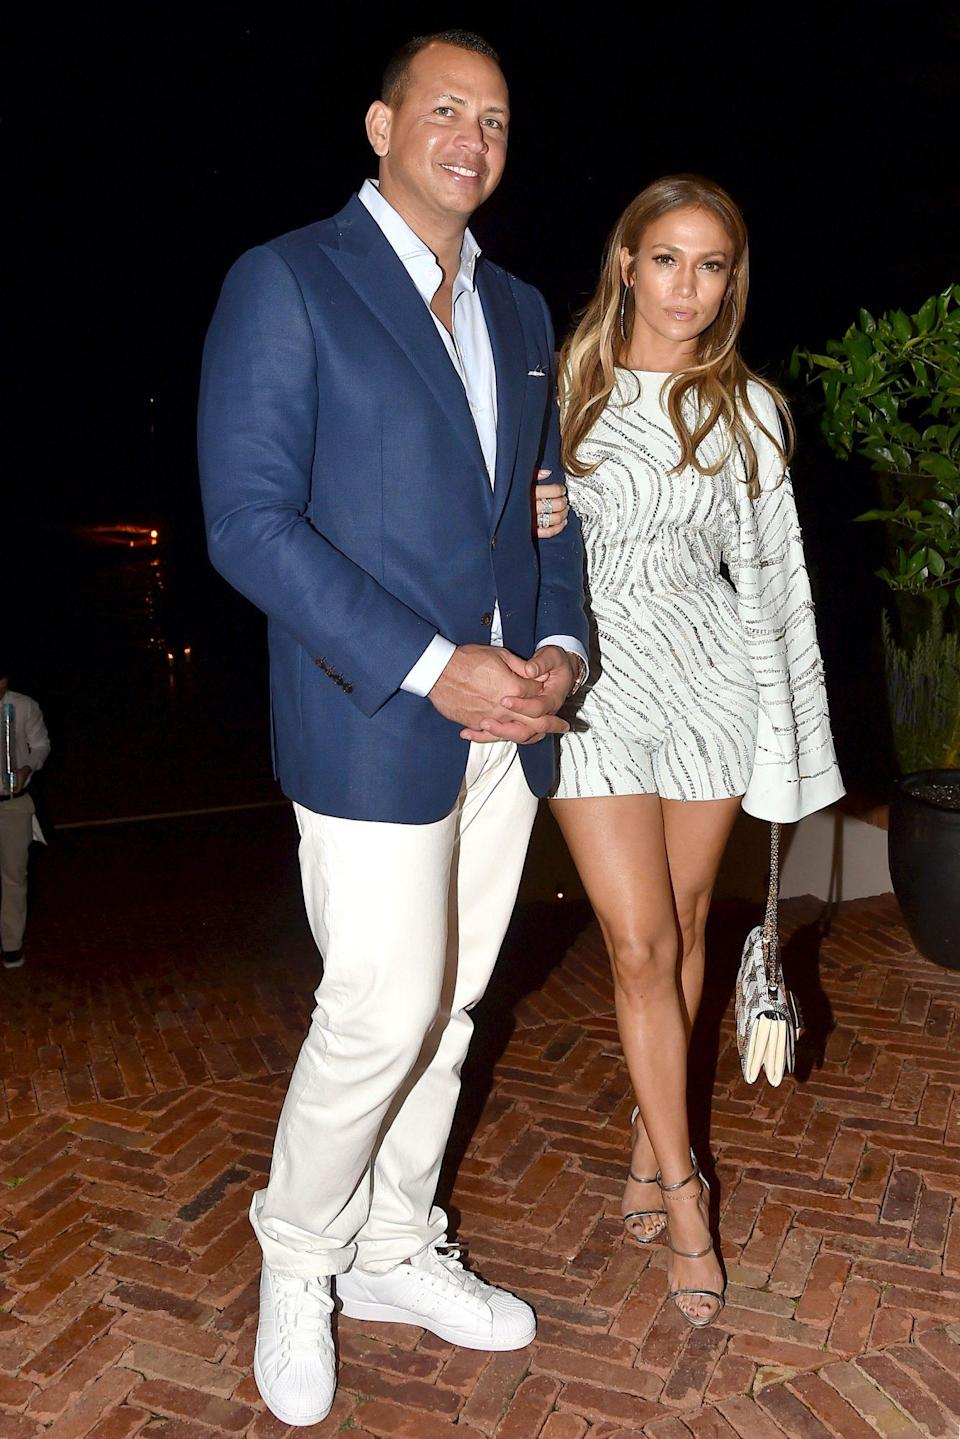 "<p>On Feb. 4, 2018, Lopez told <a href=""https://www.etonline.com/jennifer-lopez-reflects-on-year-long-relationship-with-alex-rodriguez-exclusive-95742"" rel=""nofollow noopener"" target=""_blank"" data-ylk=""slk:Entertainment Tonight"" class=""link rapid-noclick-resp""><em>Entertainment Tonight</em></a> of her relationship, ""We both are so happy about our lives right now and where we're at professionally, as well as personally...things seem to be flowing in a really beautiful way. We both have a lot of support for each other and a lot of love for each other.""</p>"